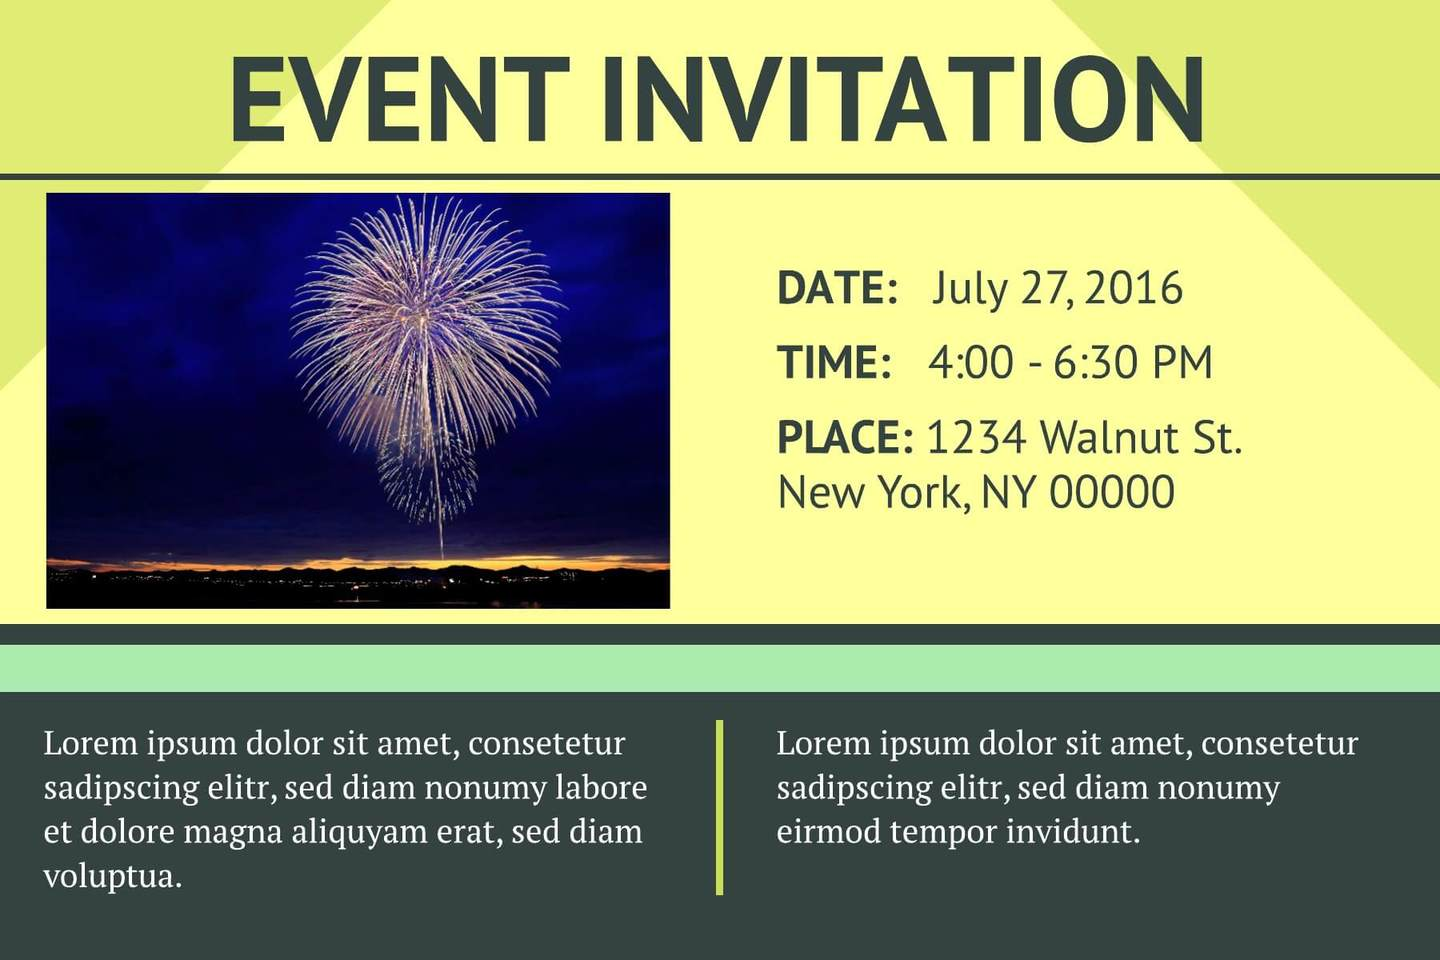 16 free invitation card templates examples lucidpress event invitation template fbccfo Image collections